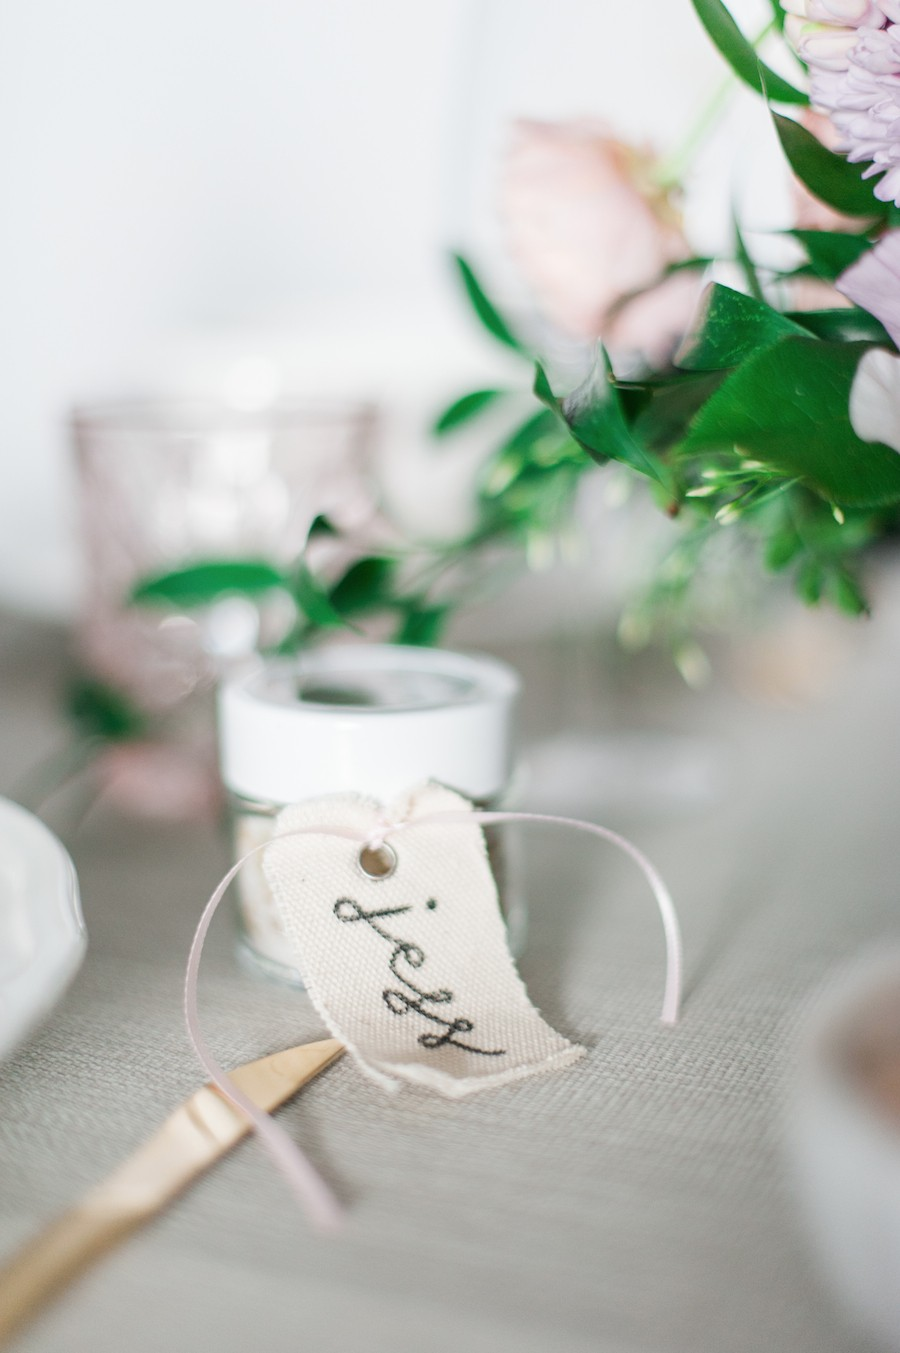 DIY Rosemary sea salt favors